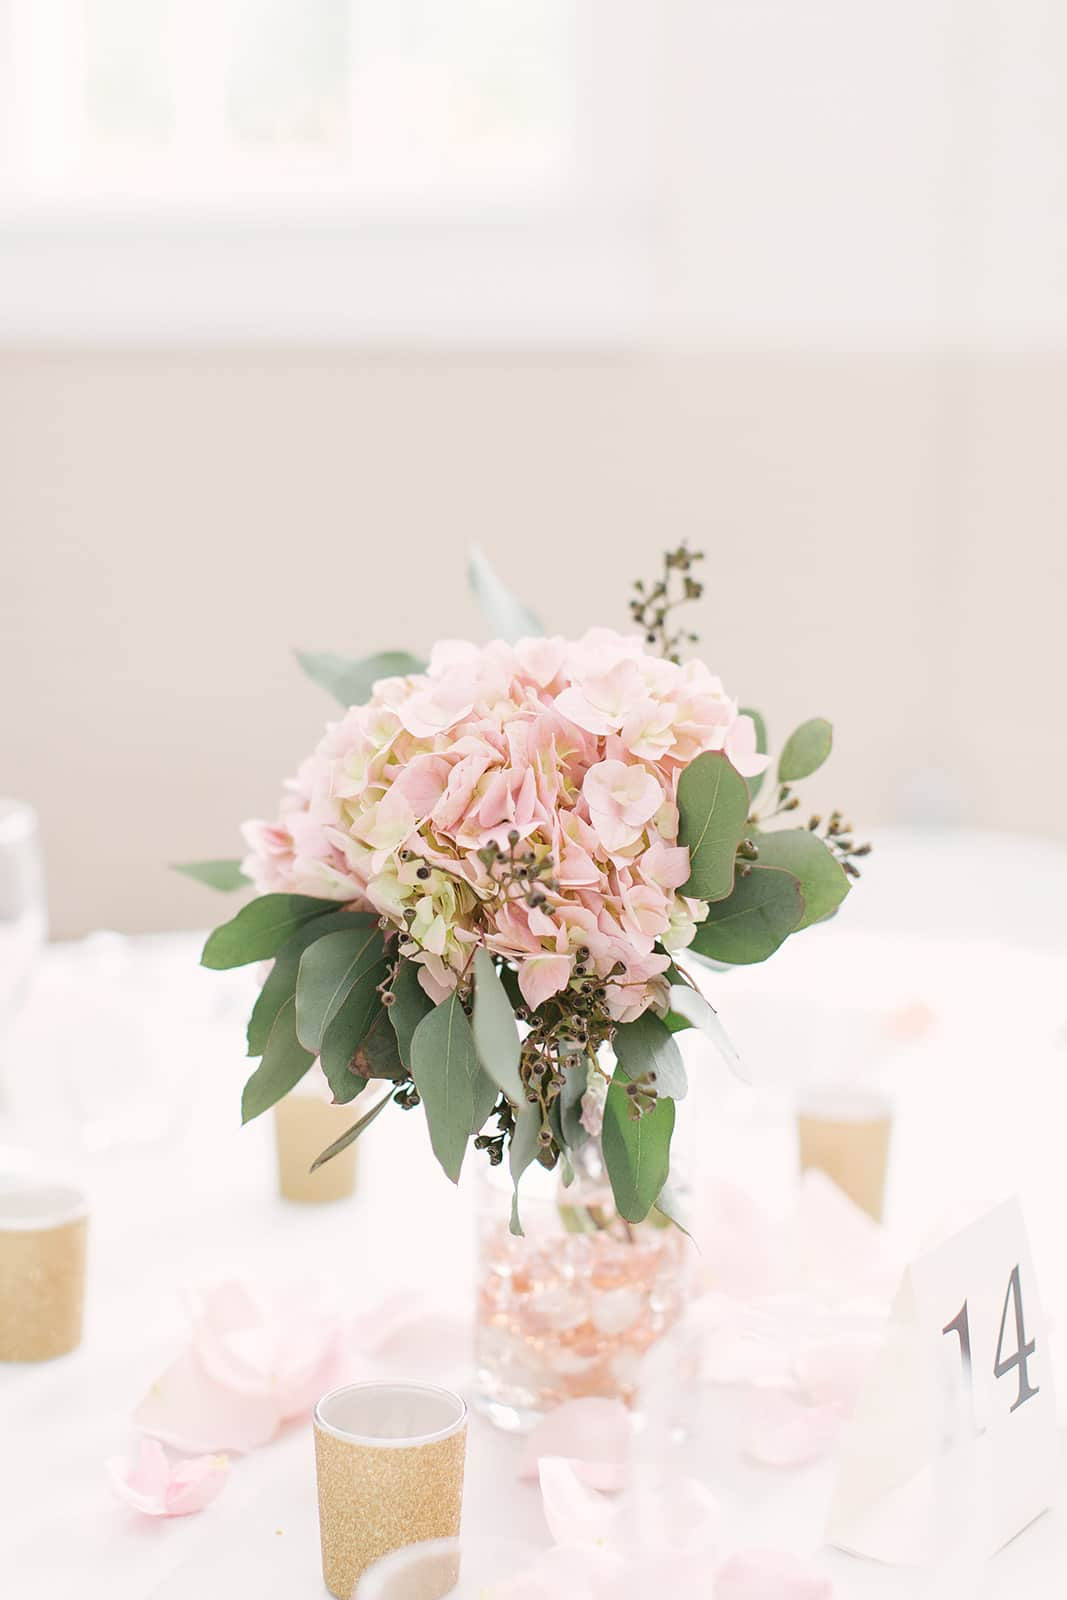 Pale pink hydrangeas serve as centerpieces for a spring wedding at The Diary Barn captured by Paige Ryan Photography